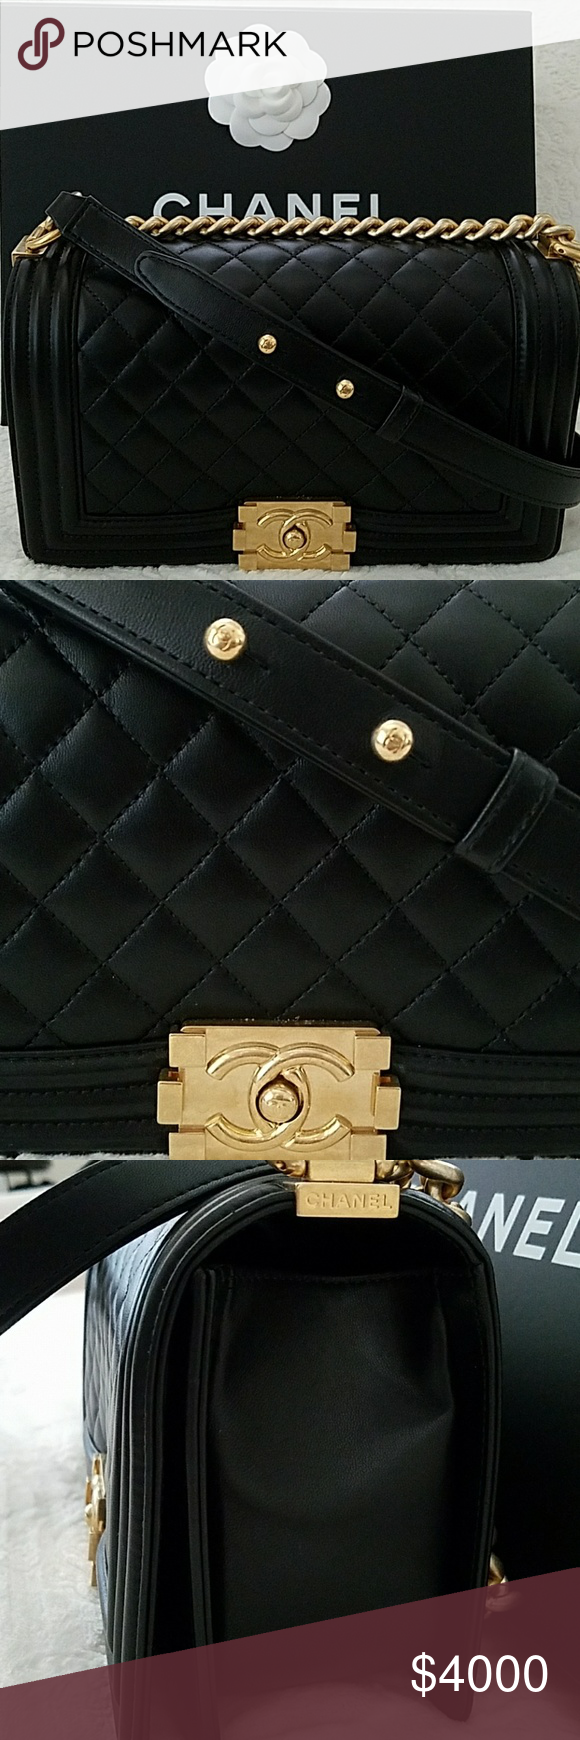 Authentic Black Chanel Old Medium Boy Bag Gold Hw Bought In Paris Mint Condition Only